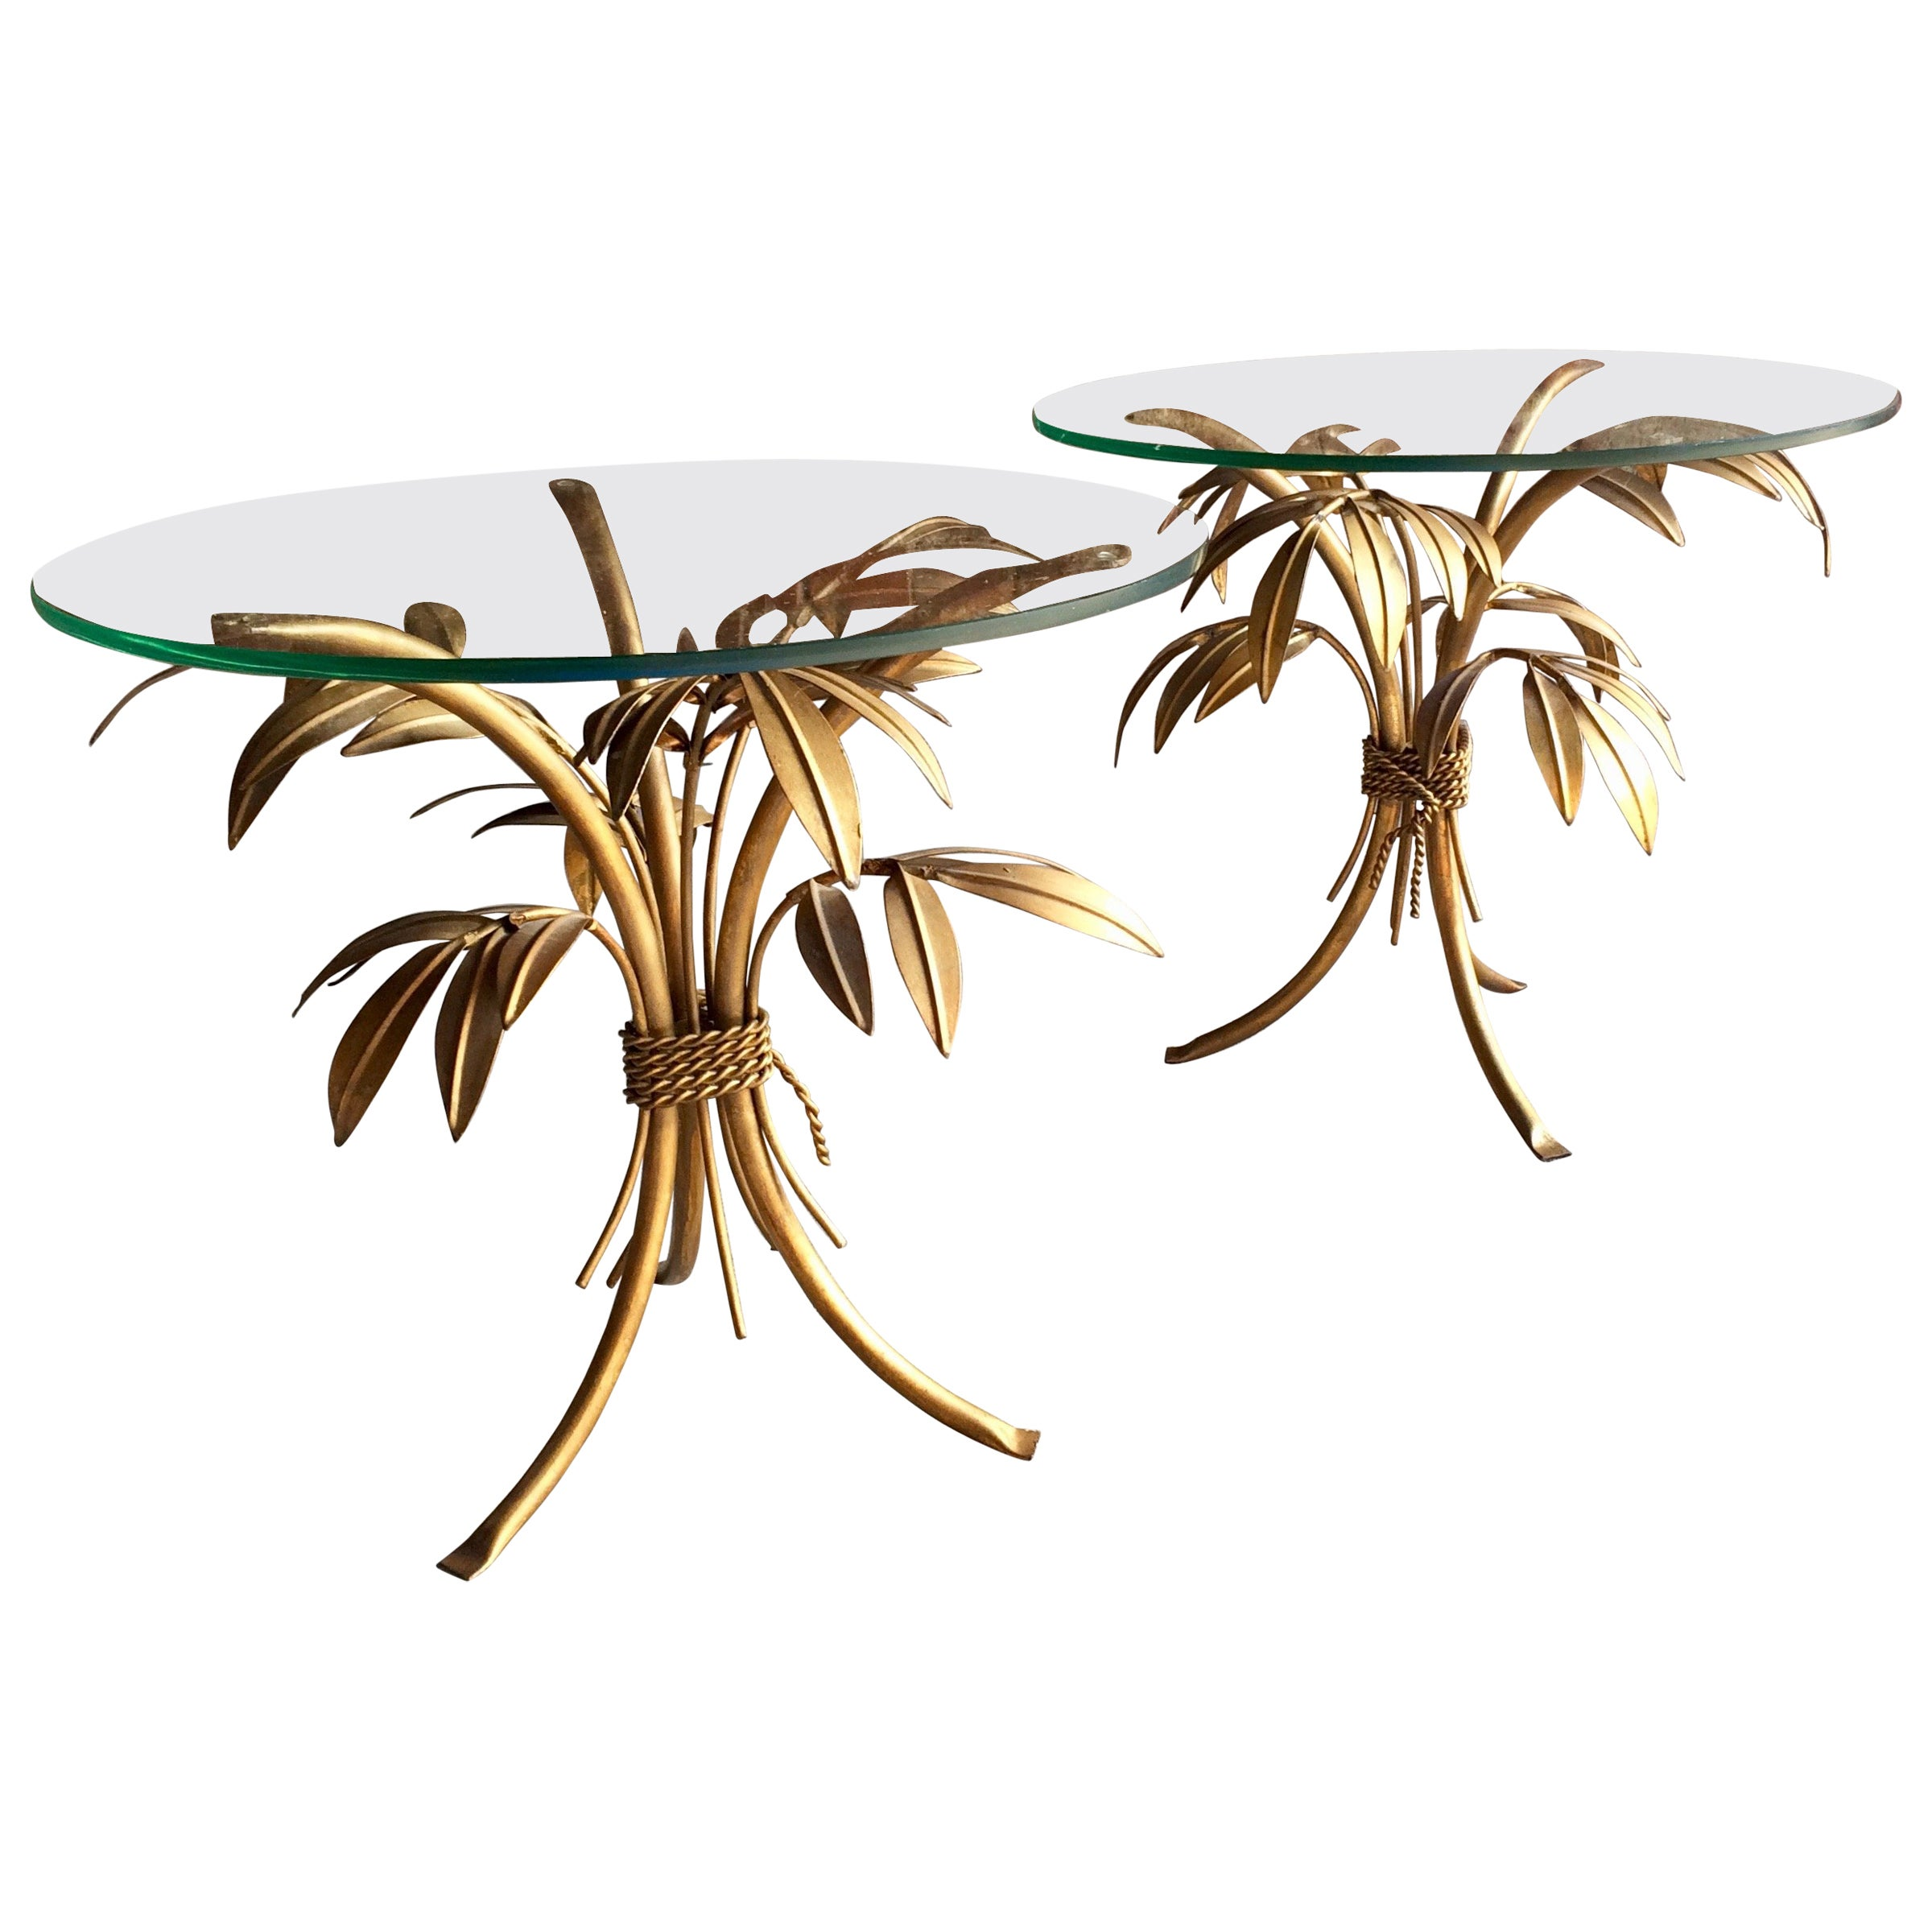 Stunning Hans Kögl Gold Palm Tree Side Tables Pair Hollywood Regency 1960s At 1stdibs